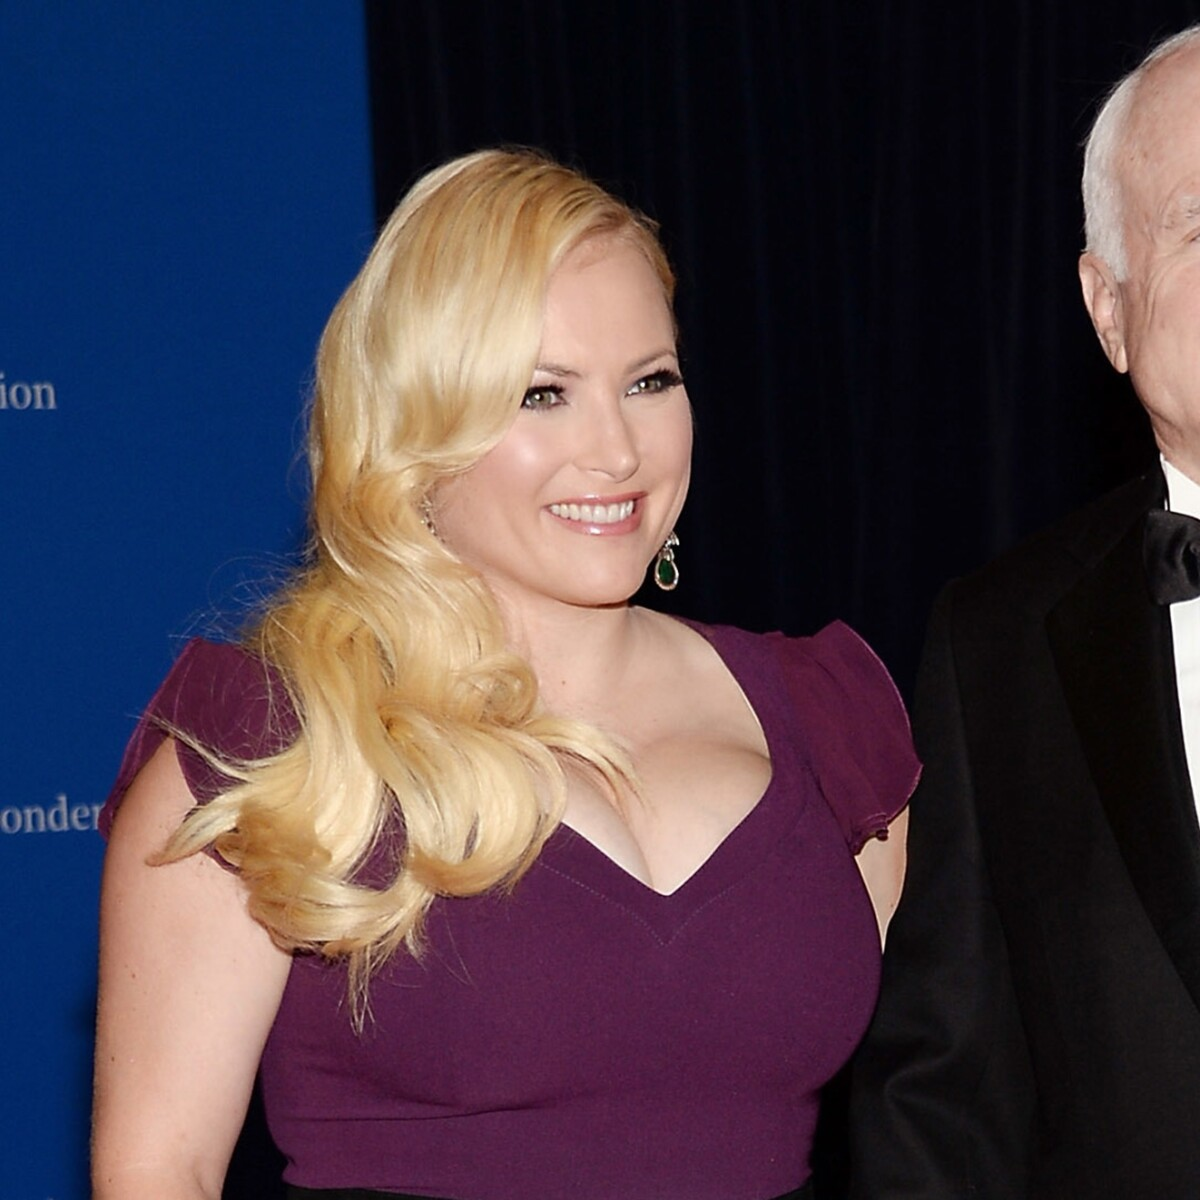 Meghan Mccain Tank Top Pick: Meghan McCain: 'My Father Doesn't Need Torture Explained